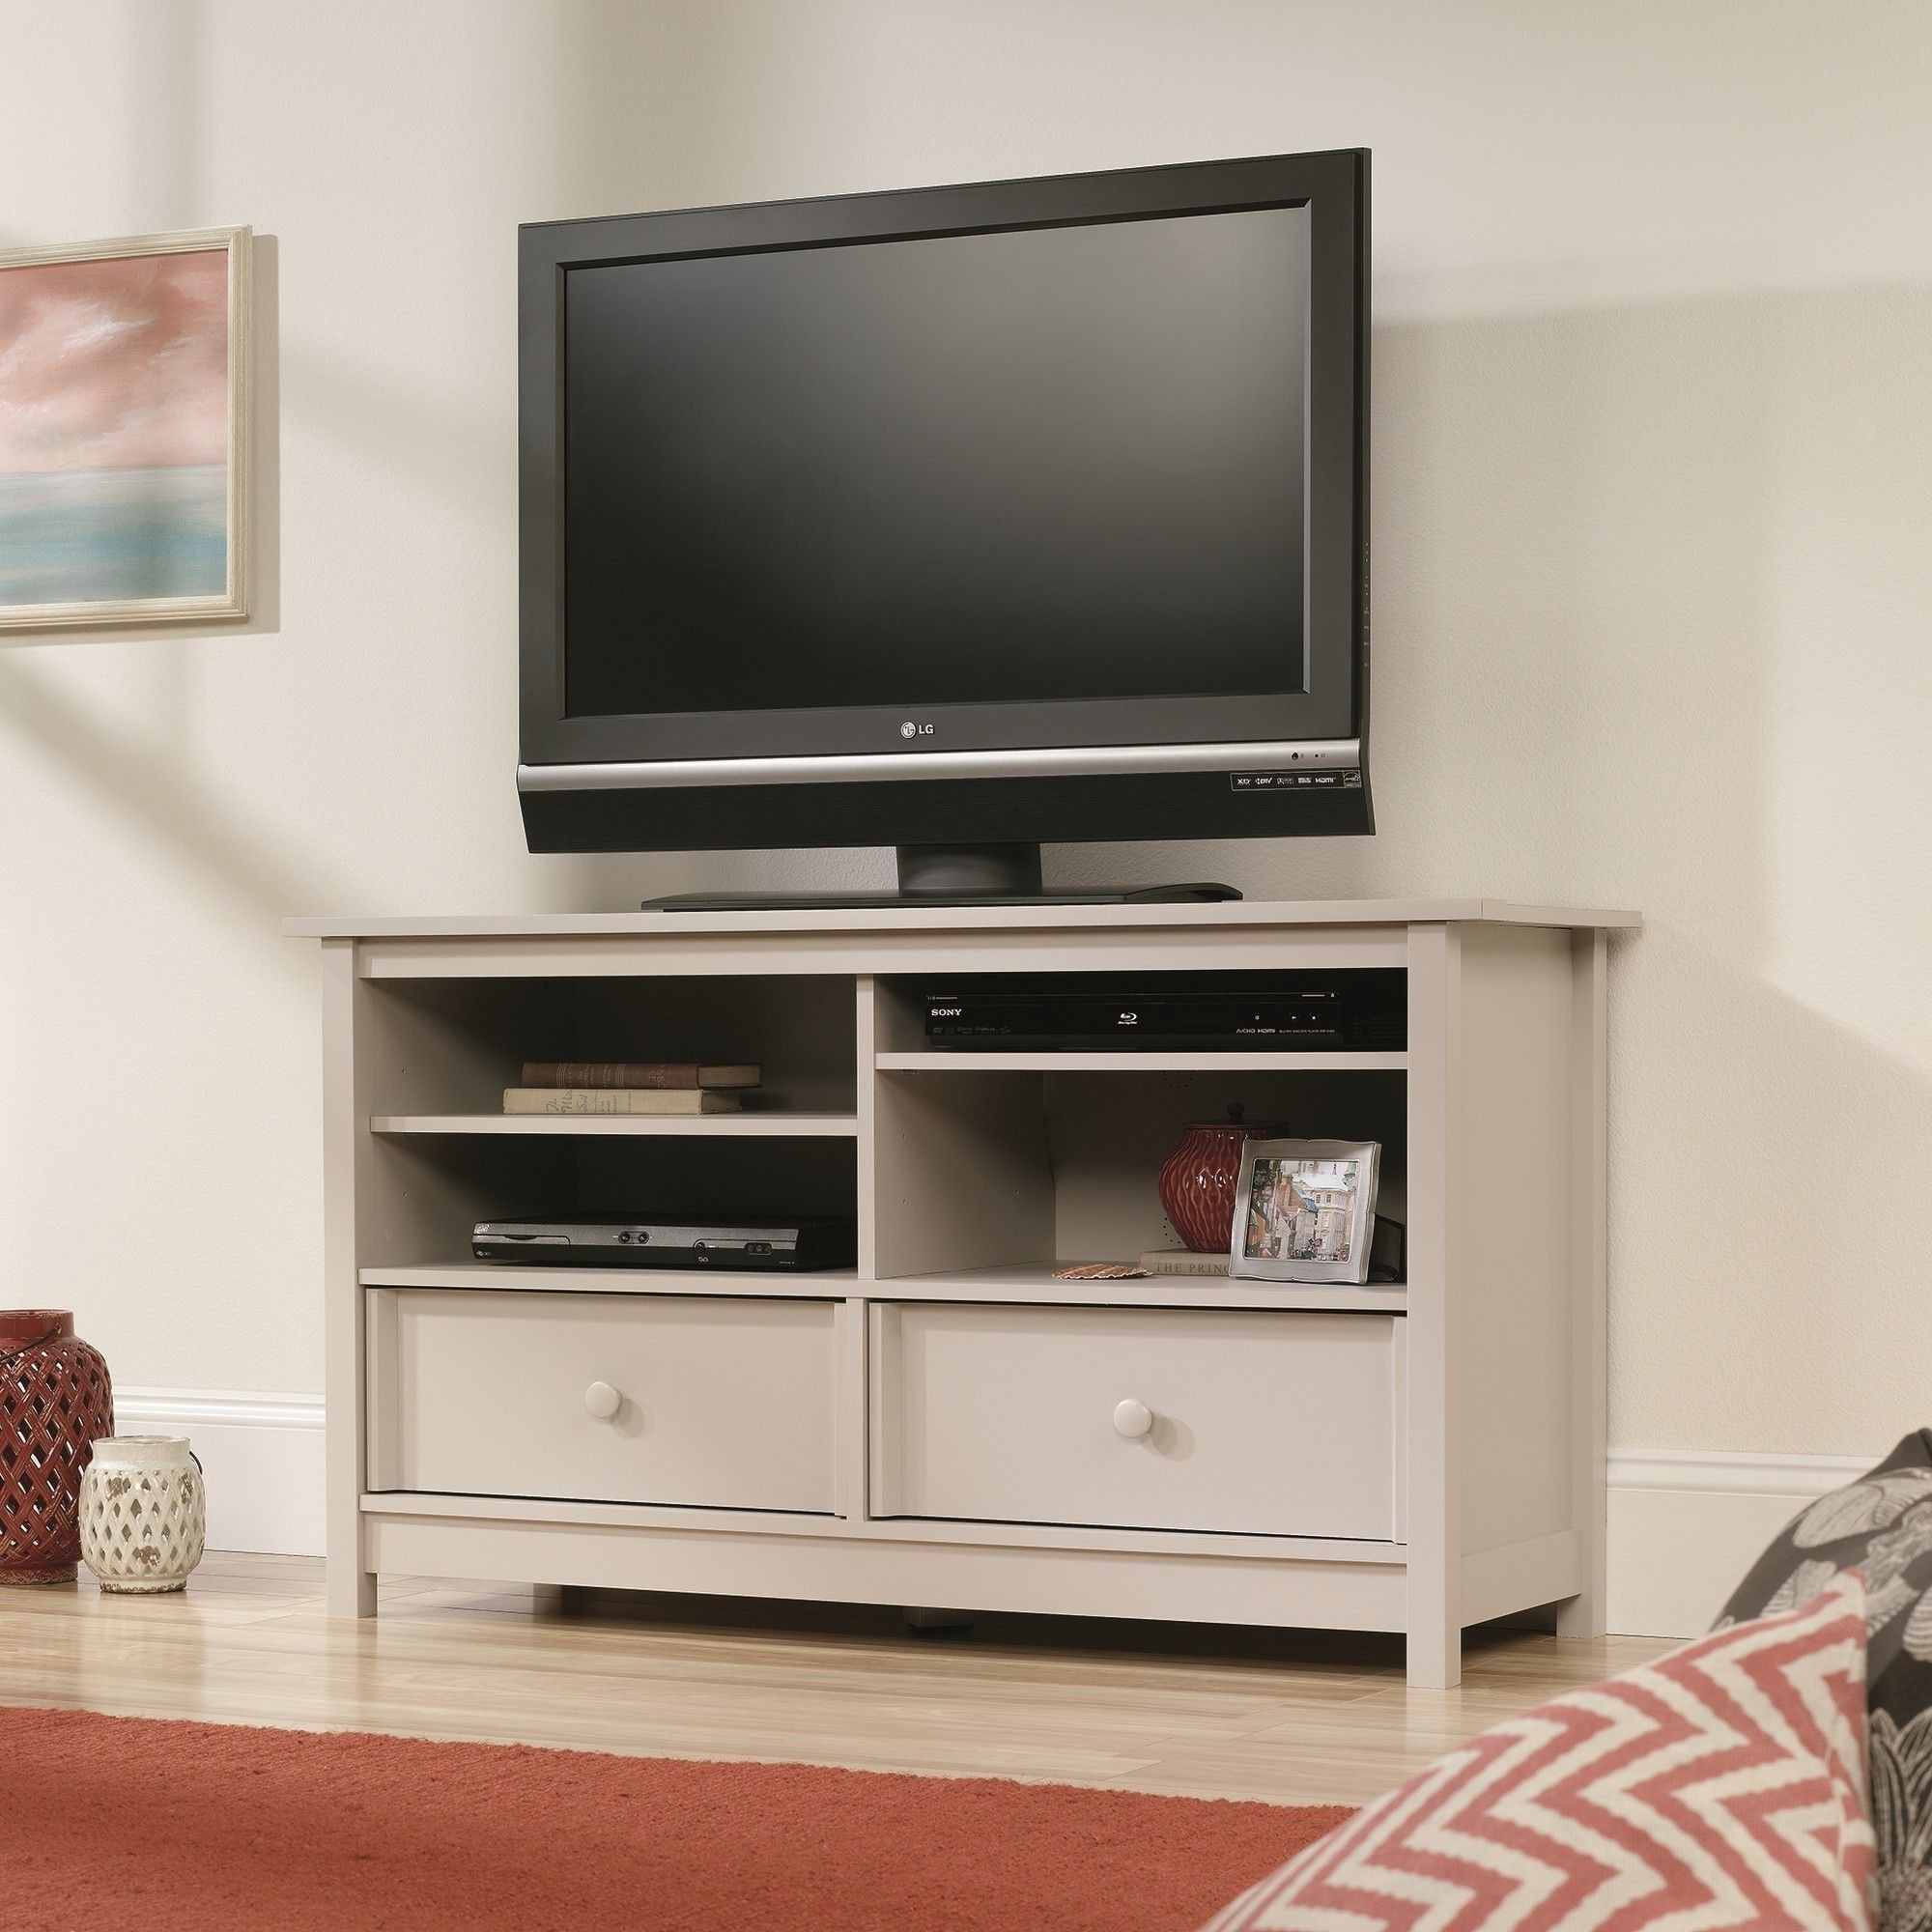 This Piece Of Furniture Is A Very Solid And Functional TV Stand. Its  Durable Frame Includes Open Shelves For DVD Players And Other Devices.